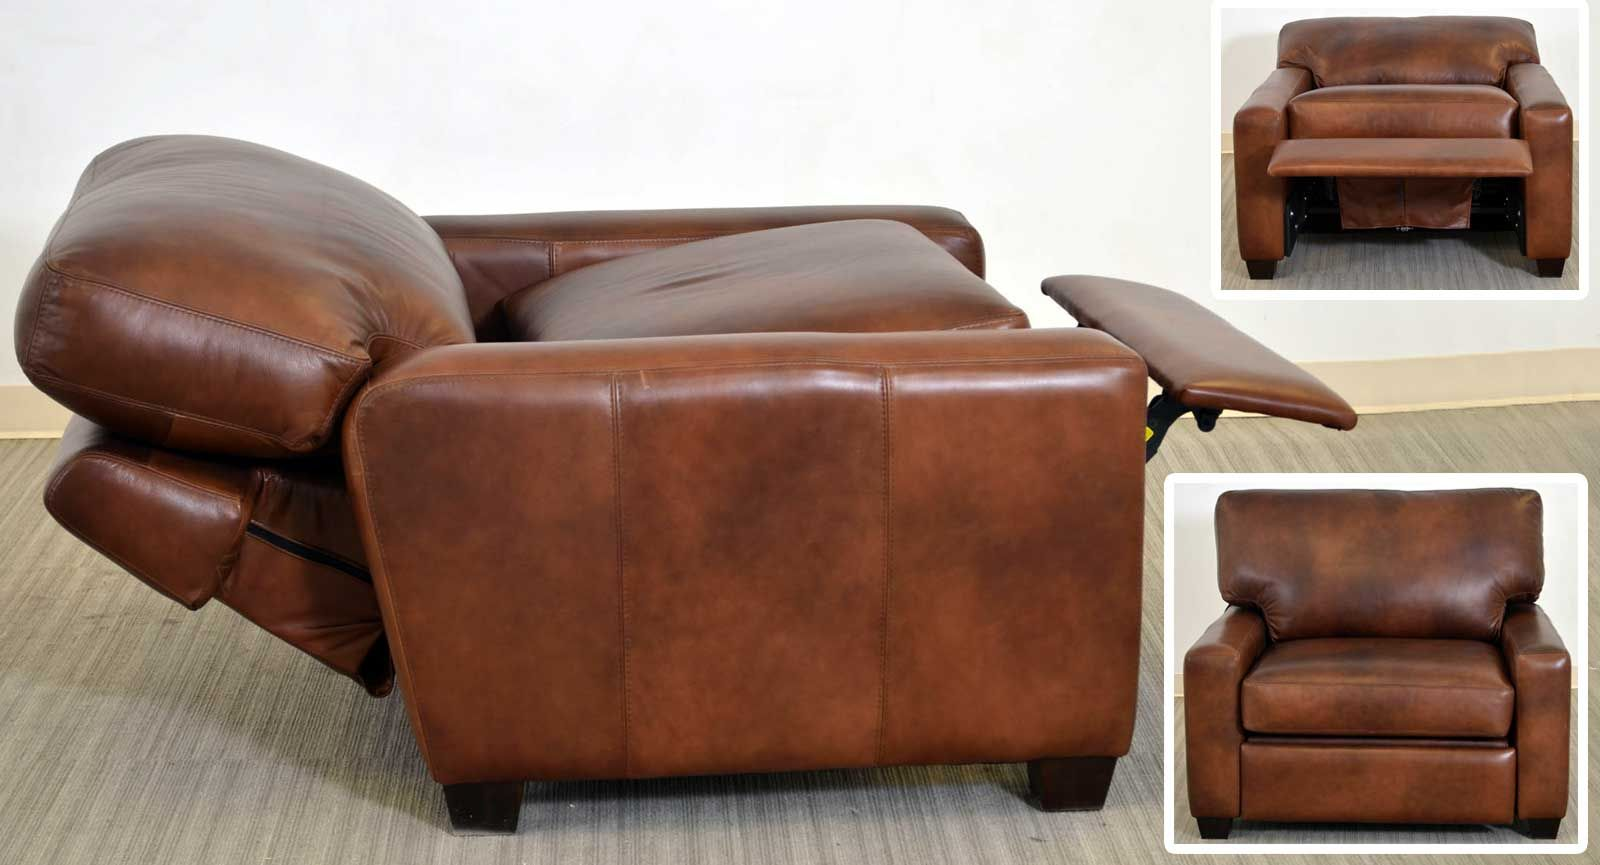 Maxwell Chair And A Half Recliner The Leather Sofa Company A Modern Transitional Style With Clean Leather Furniture Cheap Modern Furniture Chair And A Half